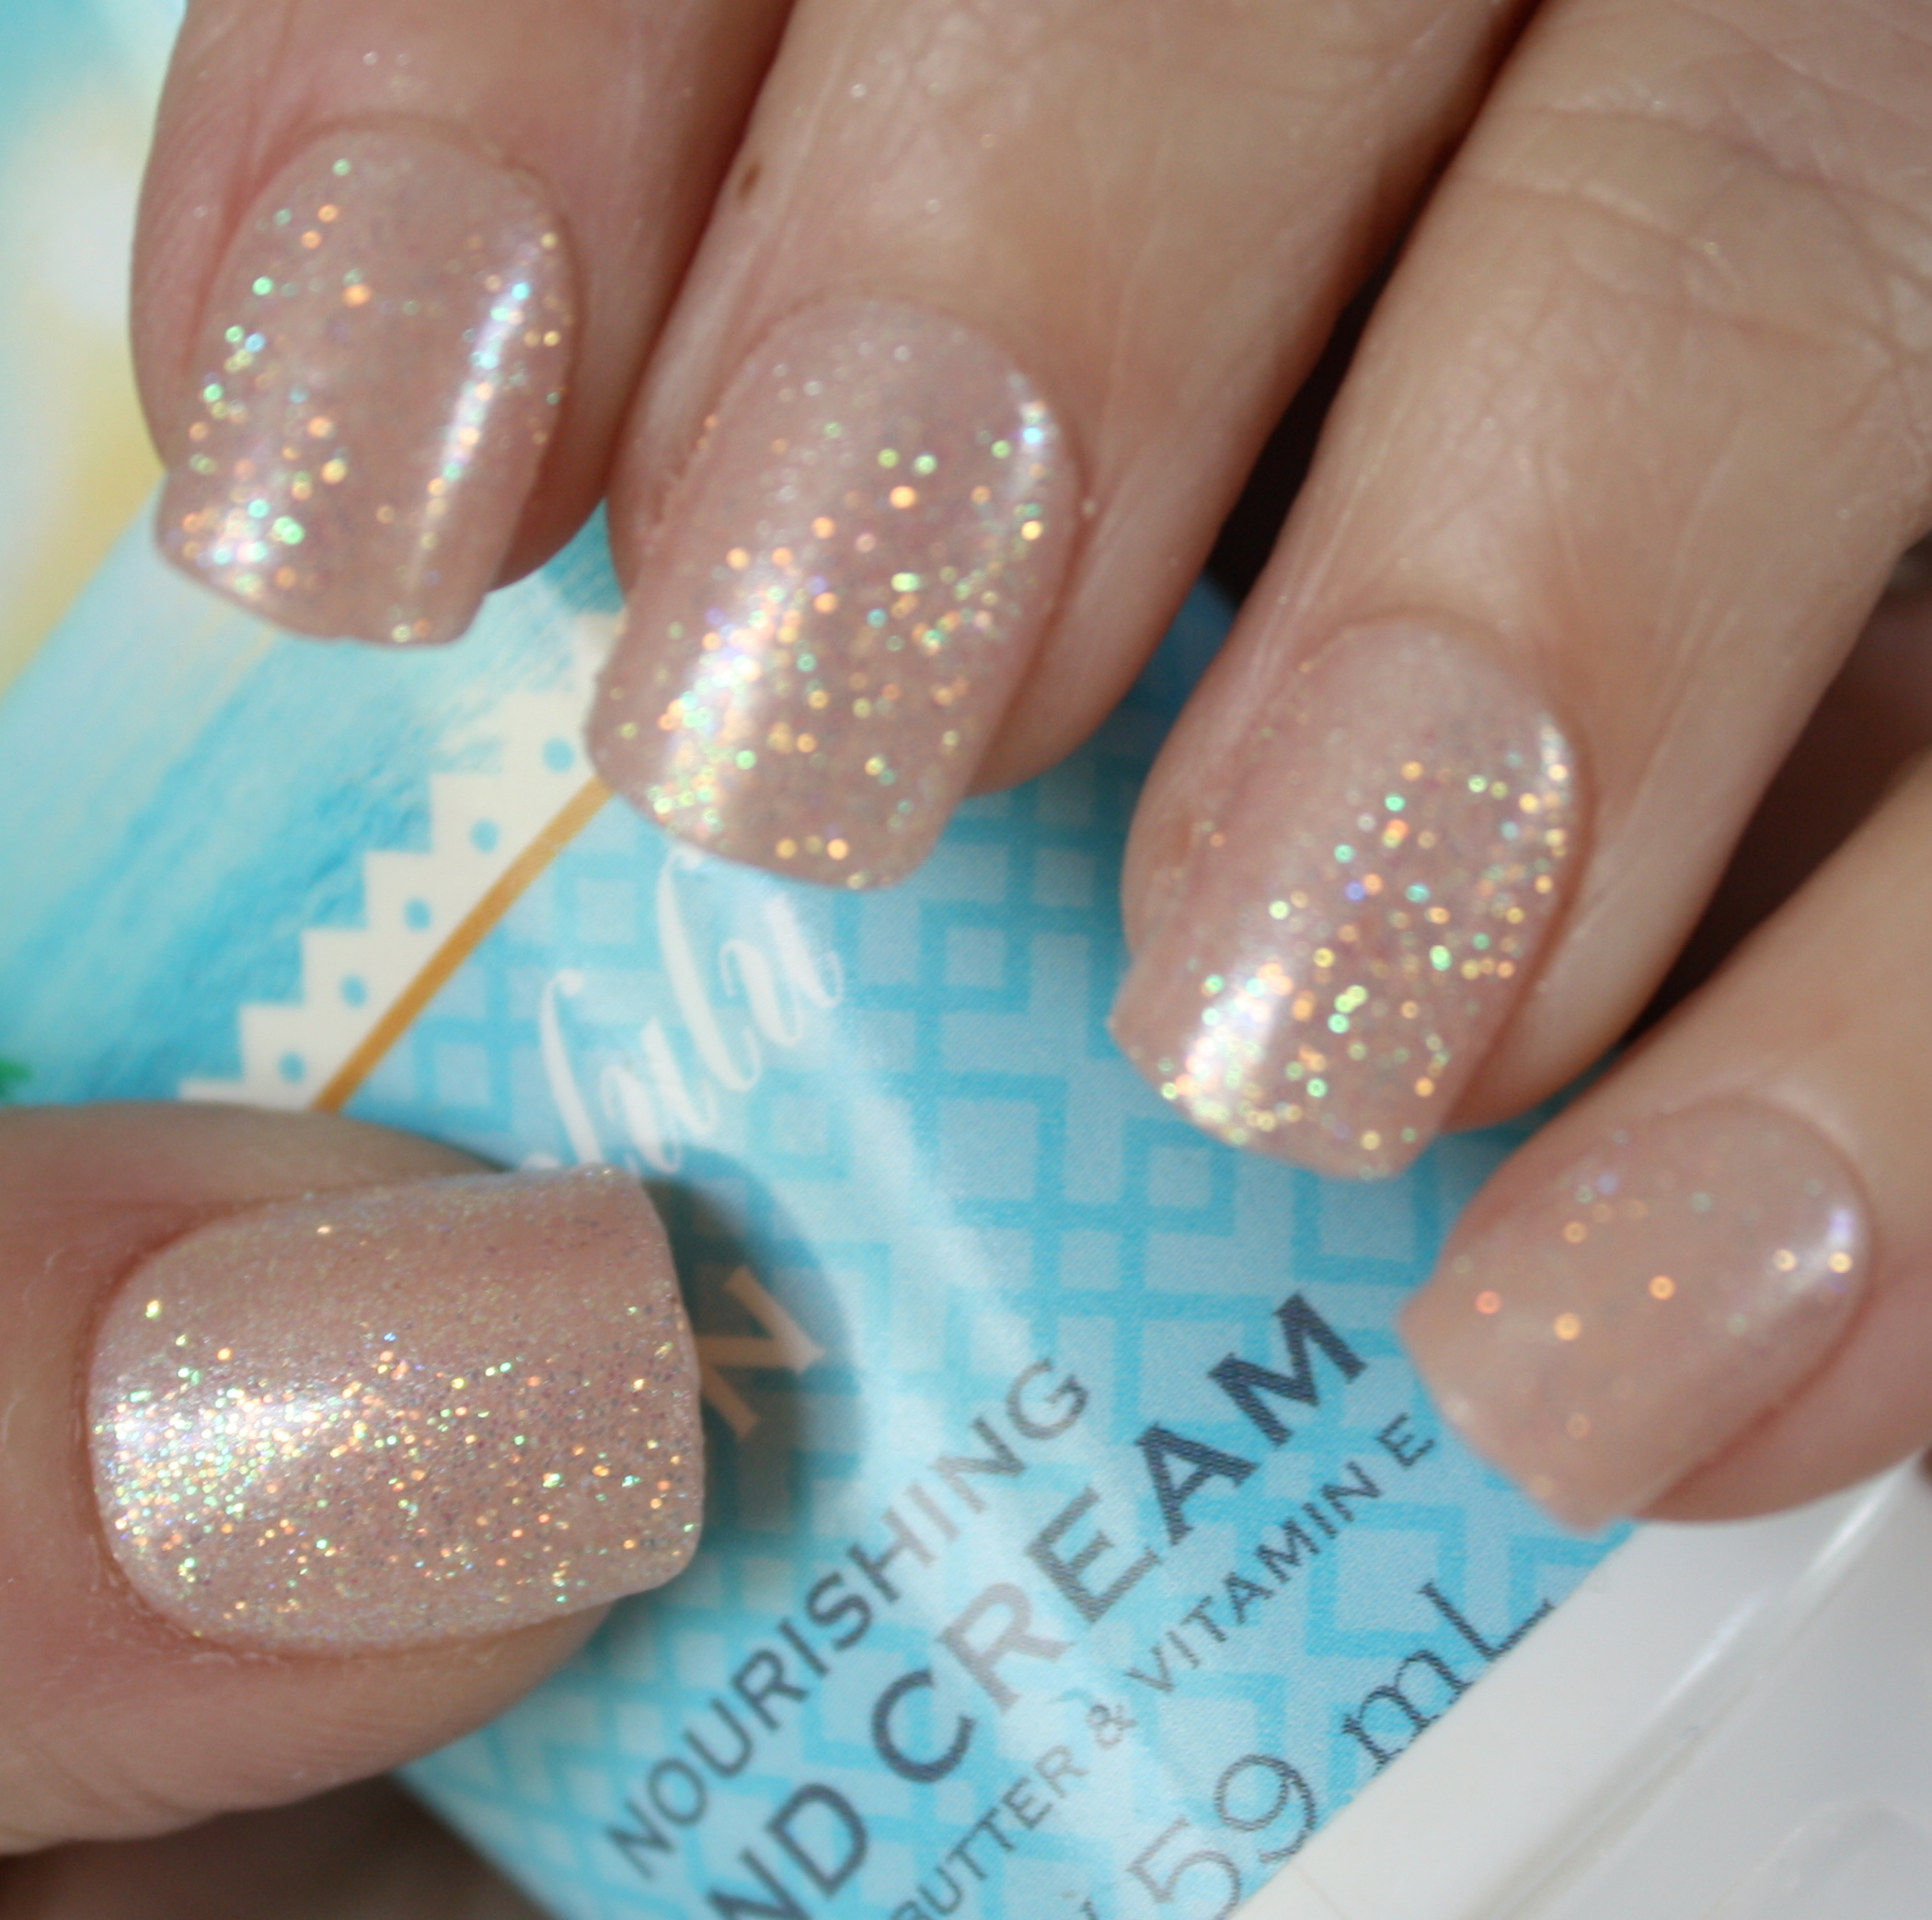 Impress Nails Short Length Shimmer Nails – horrendous color